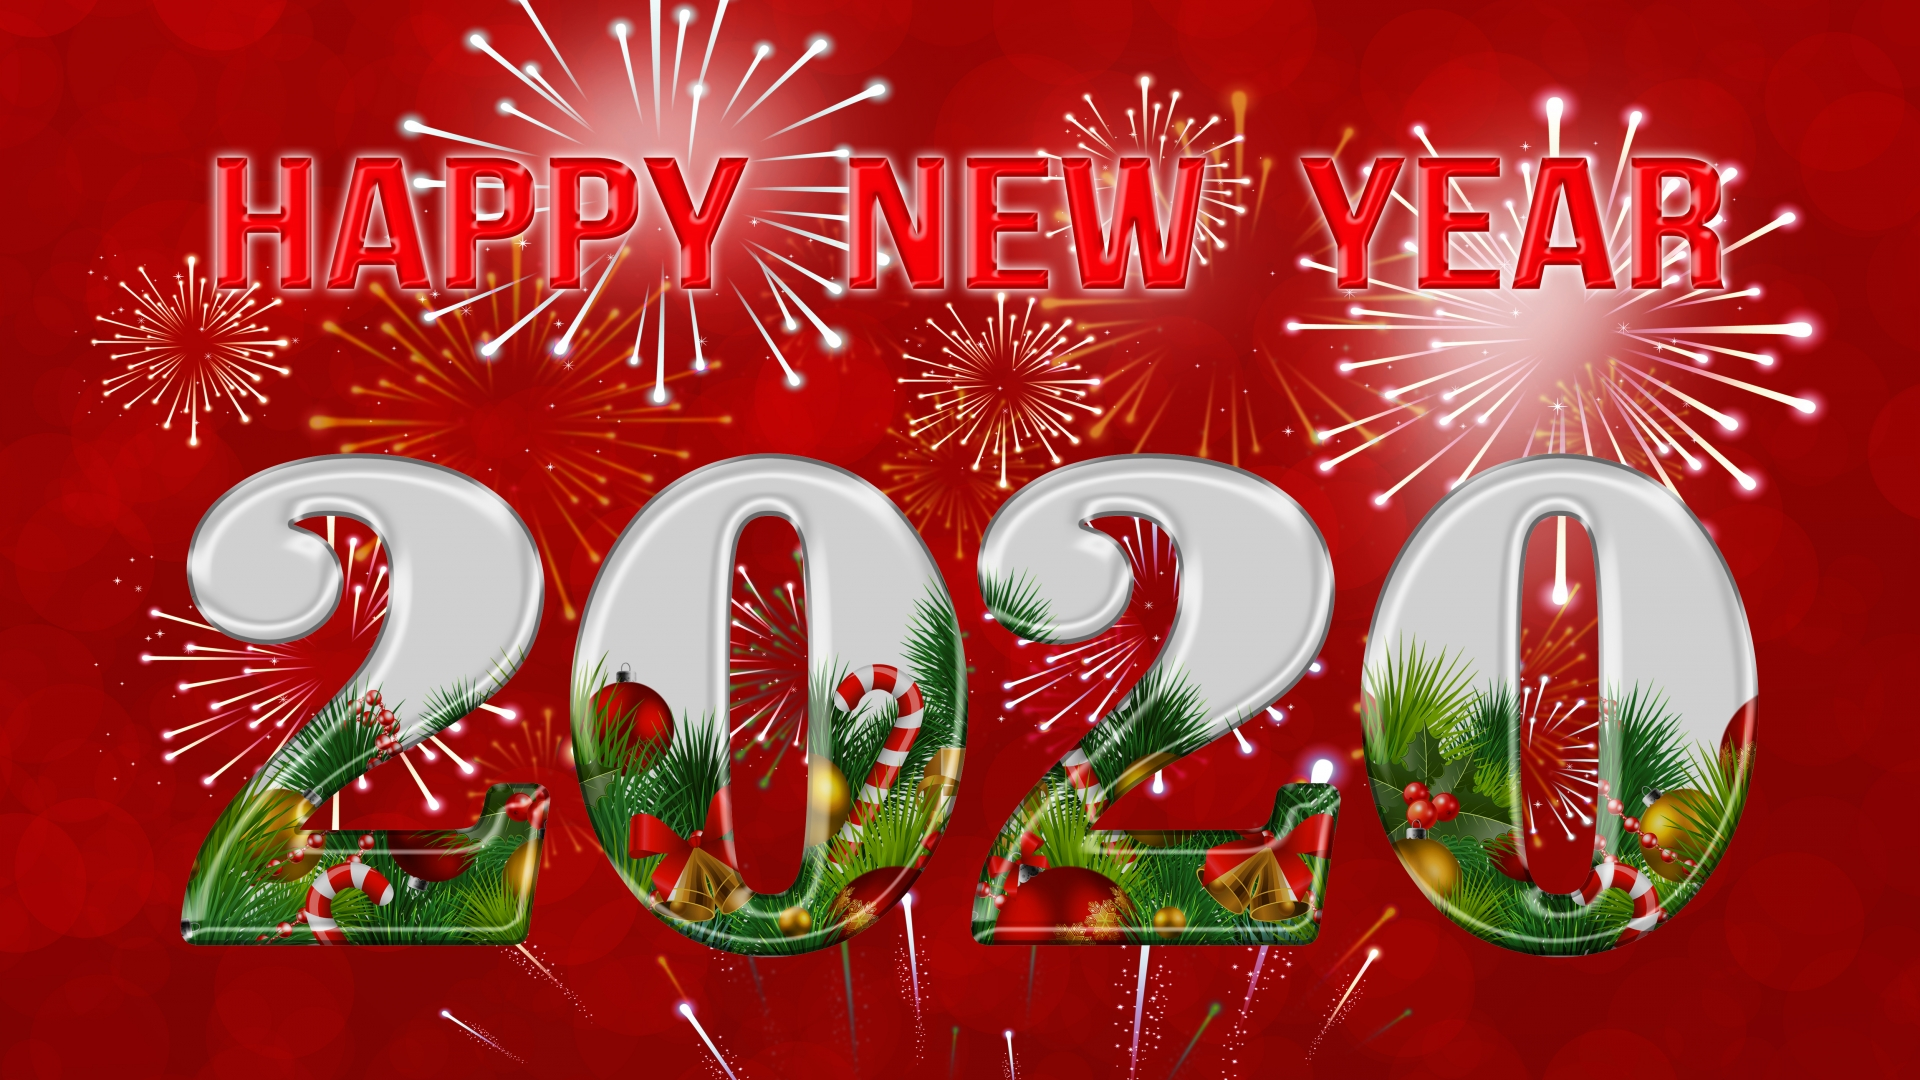 download Happy New Year 2020 Red Background Gallery 1920x1080